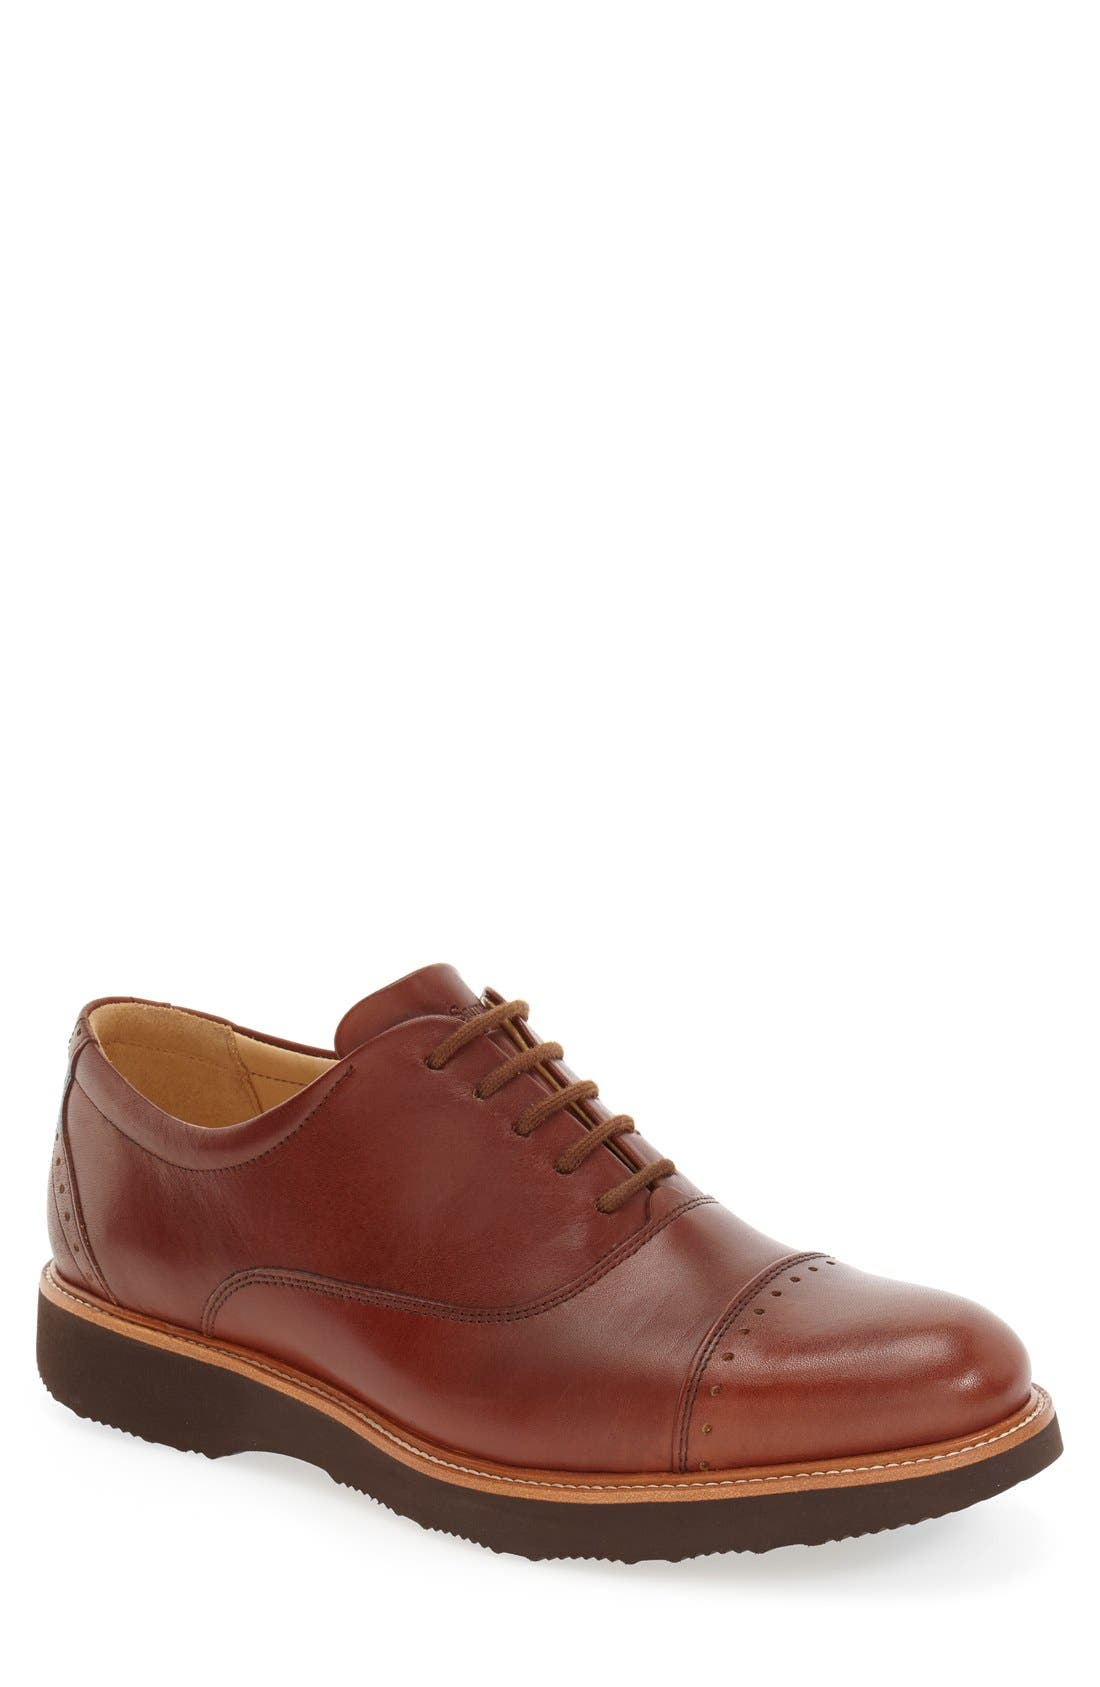 Samuel Hubbard 'Market' Cap Toe Oxford (Men)